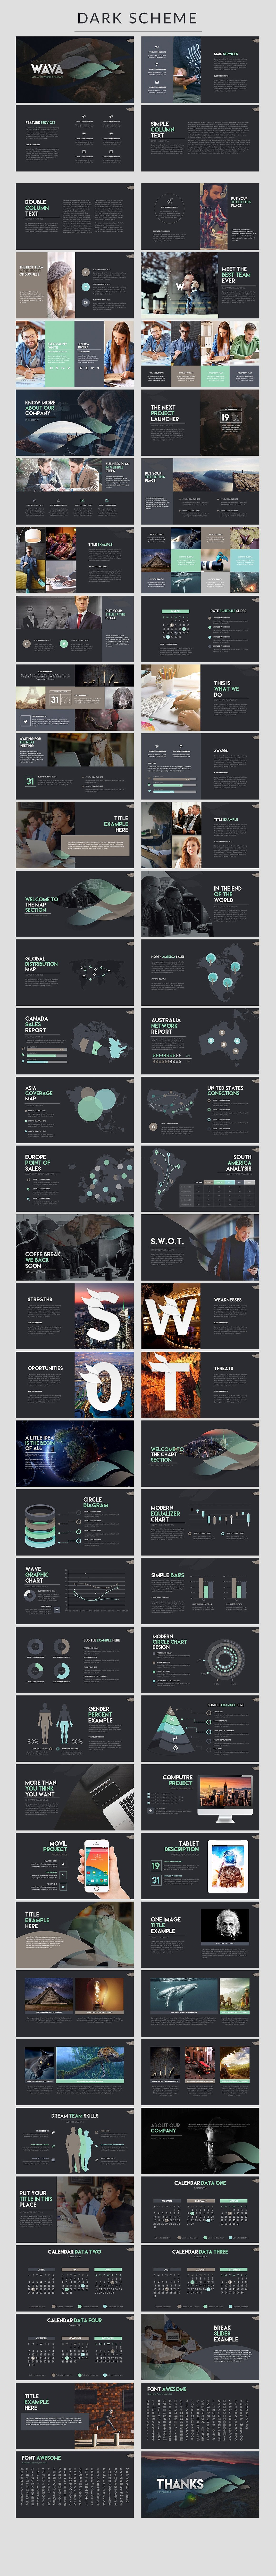 20 Powerpoint Templates with 81% OFF - Wava 03